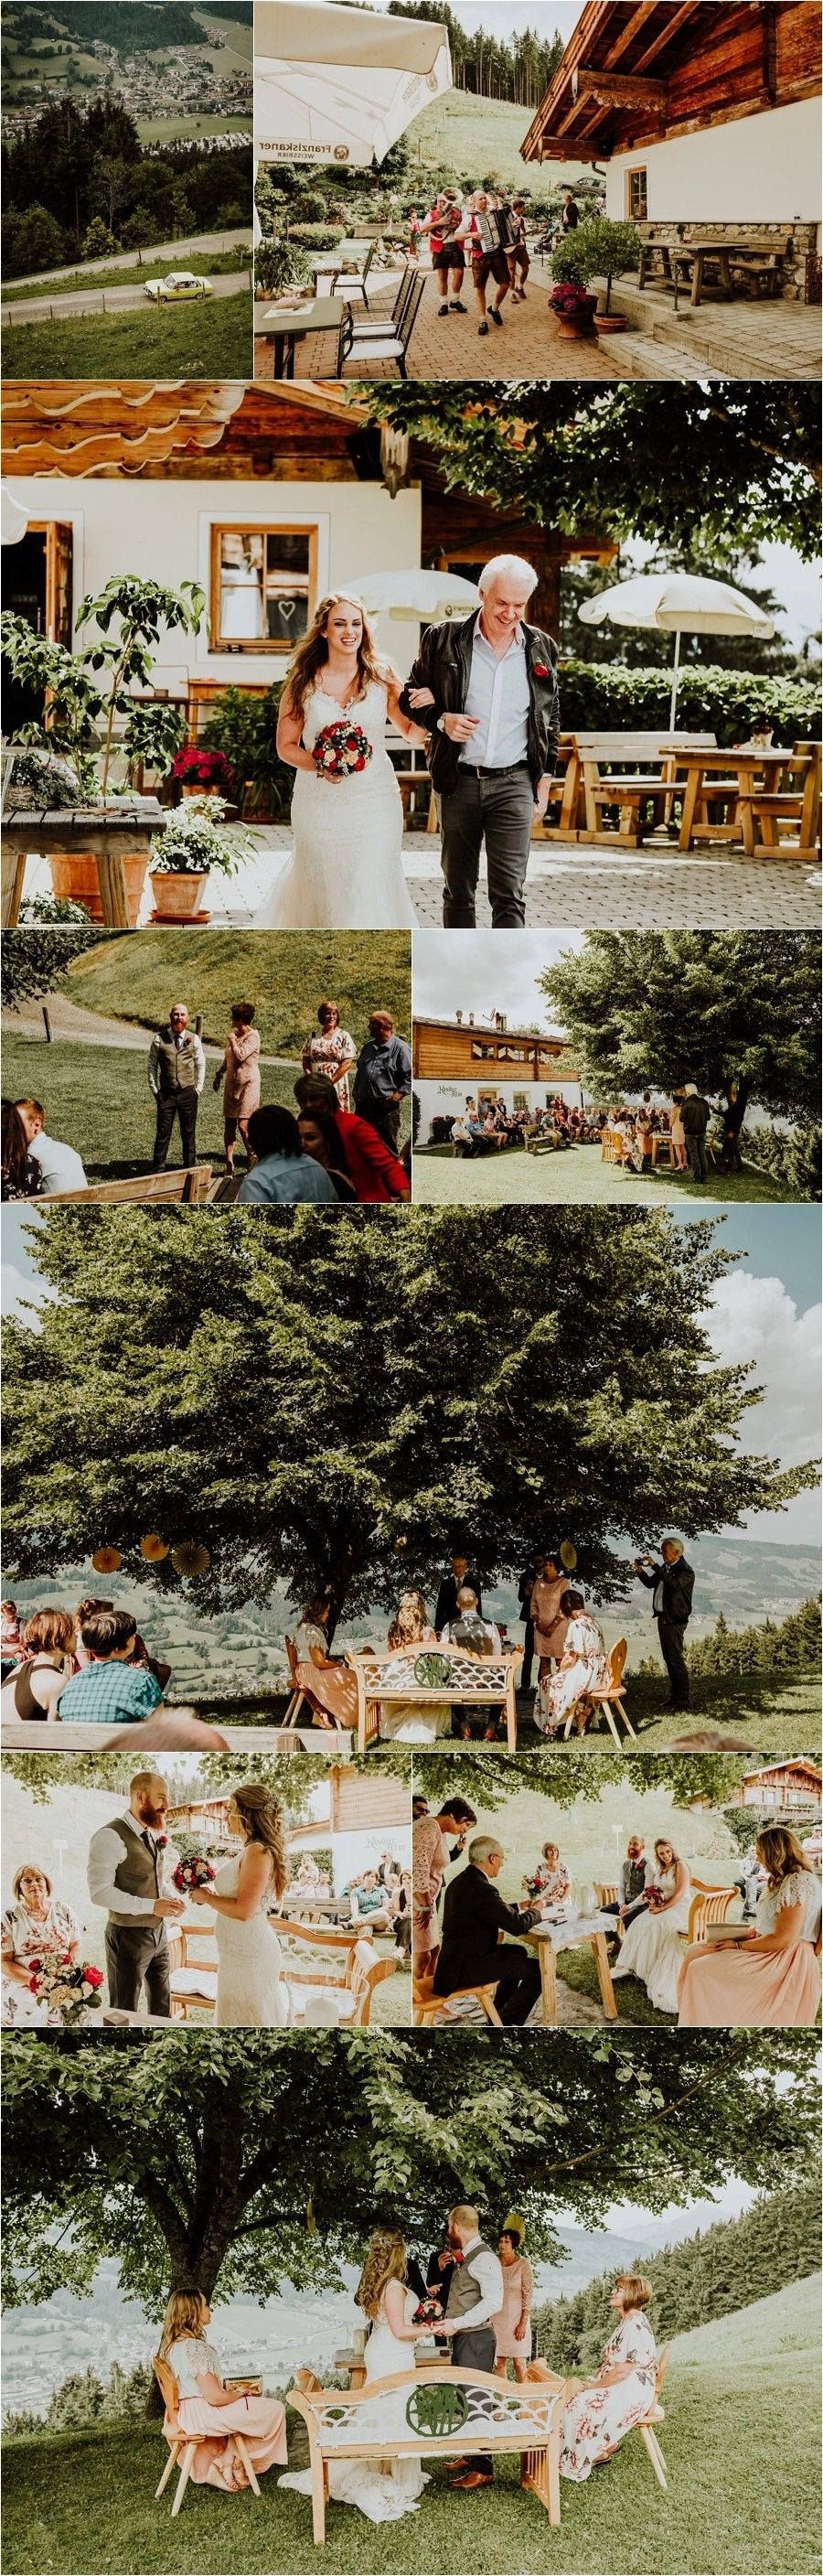 A mountain wedding ceremony at the Kandleralm in Brixen Austria by Wild Connections Photography